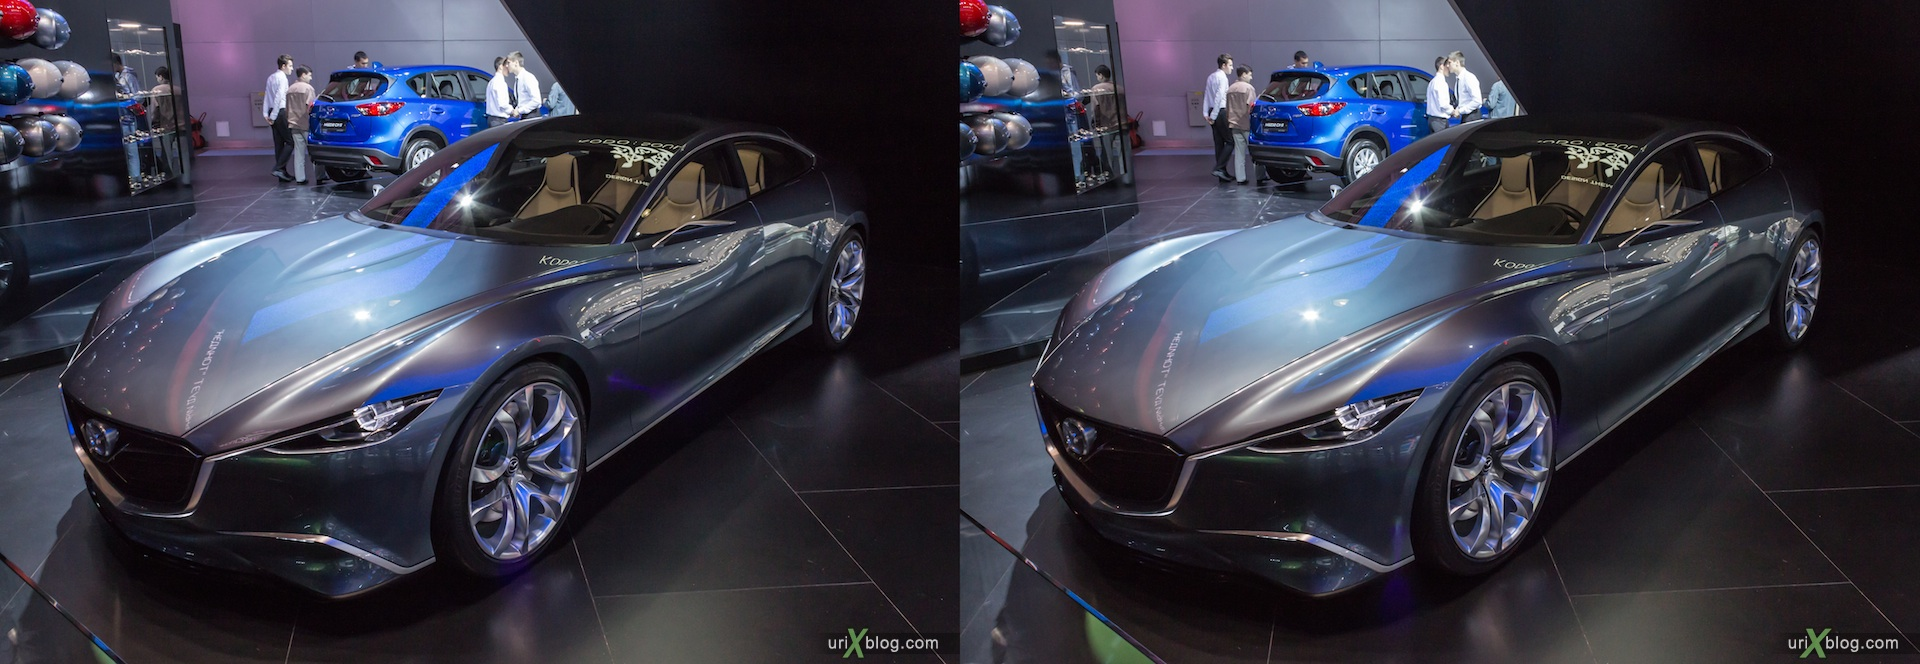 2012, Mazda, Moscow International Automobile Salon, auto show, 3D, stereo pair, cross-eyed, crossview